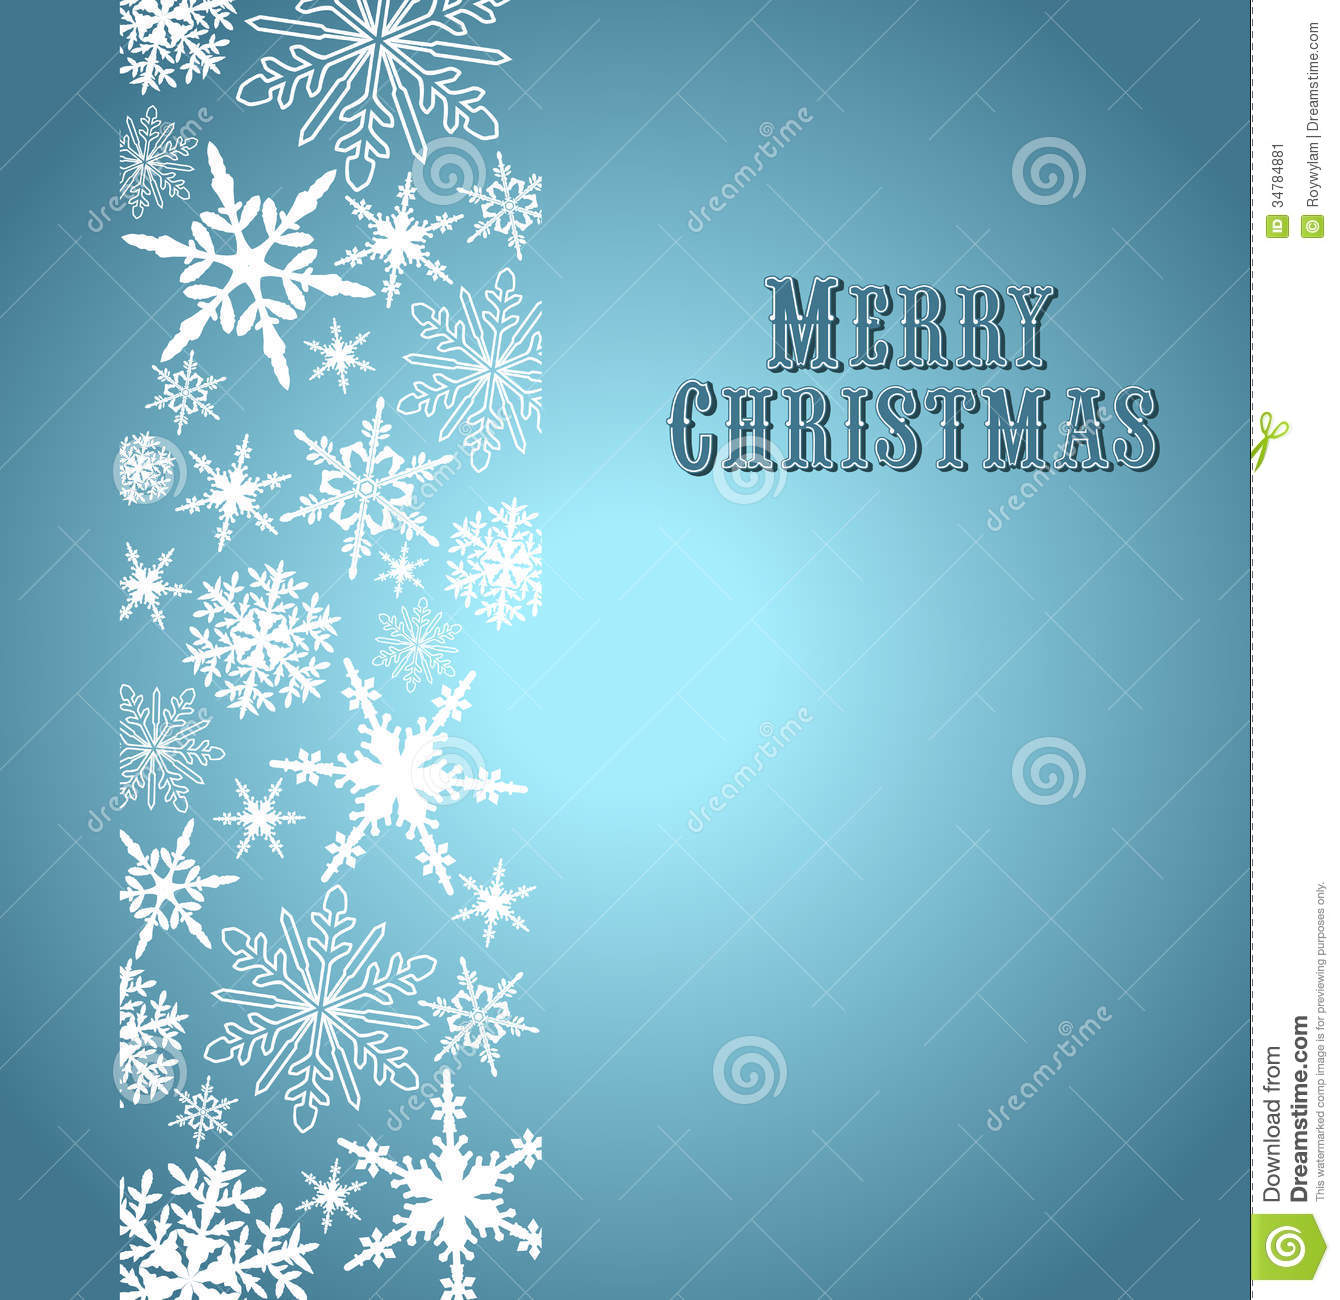 Stylish Wall Stickers Snowflakes Merry Christmas Card Stock Image Image 34784881